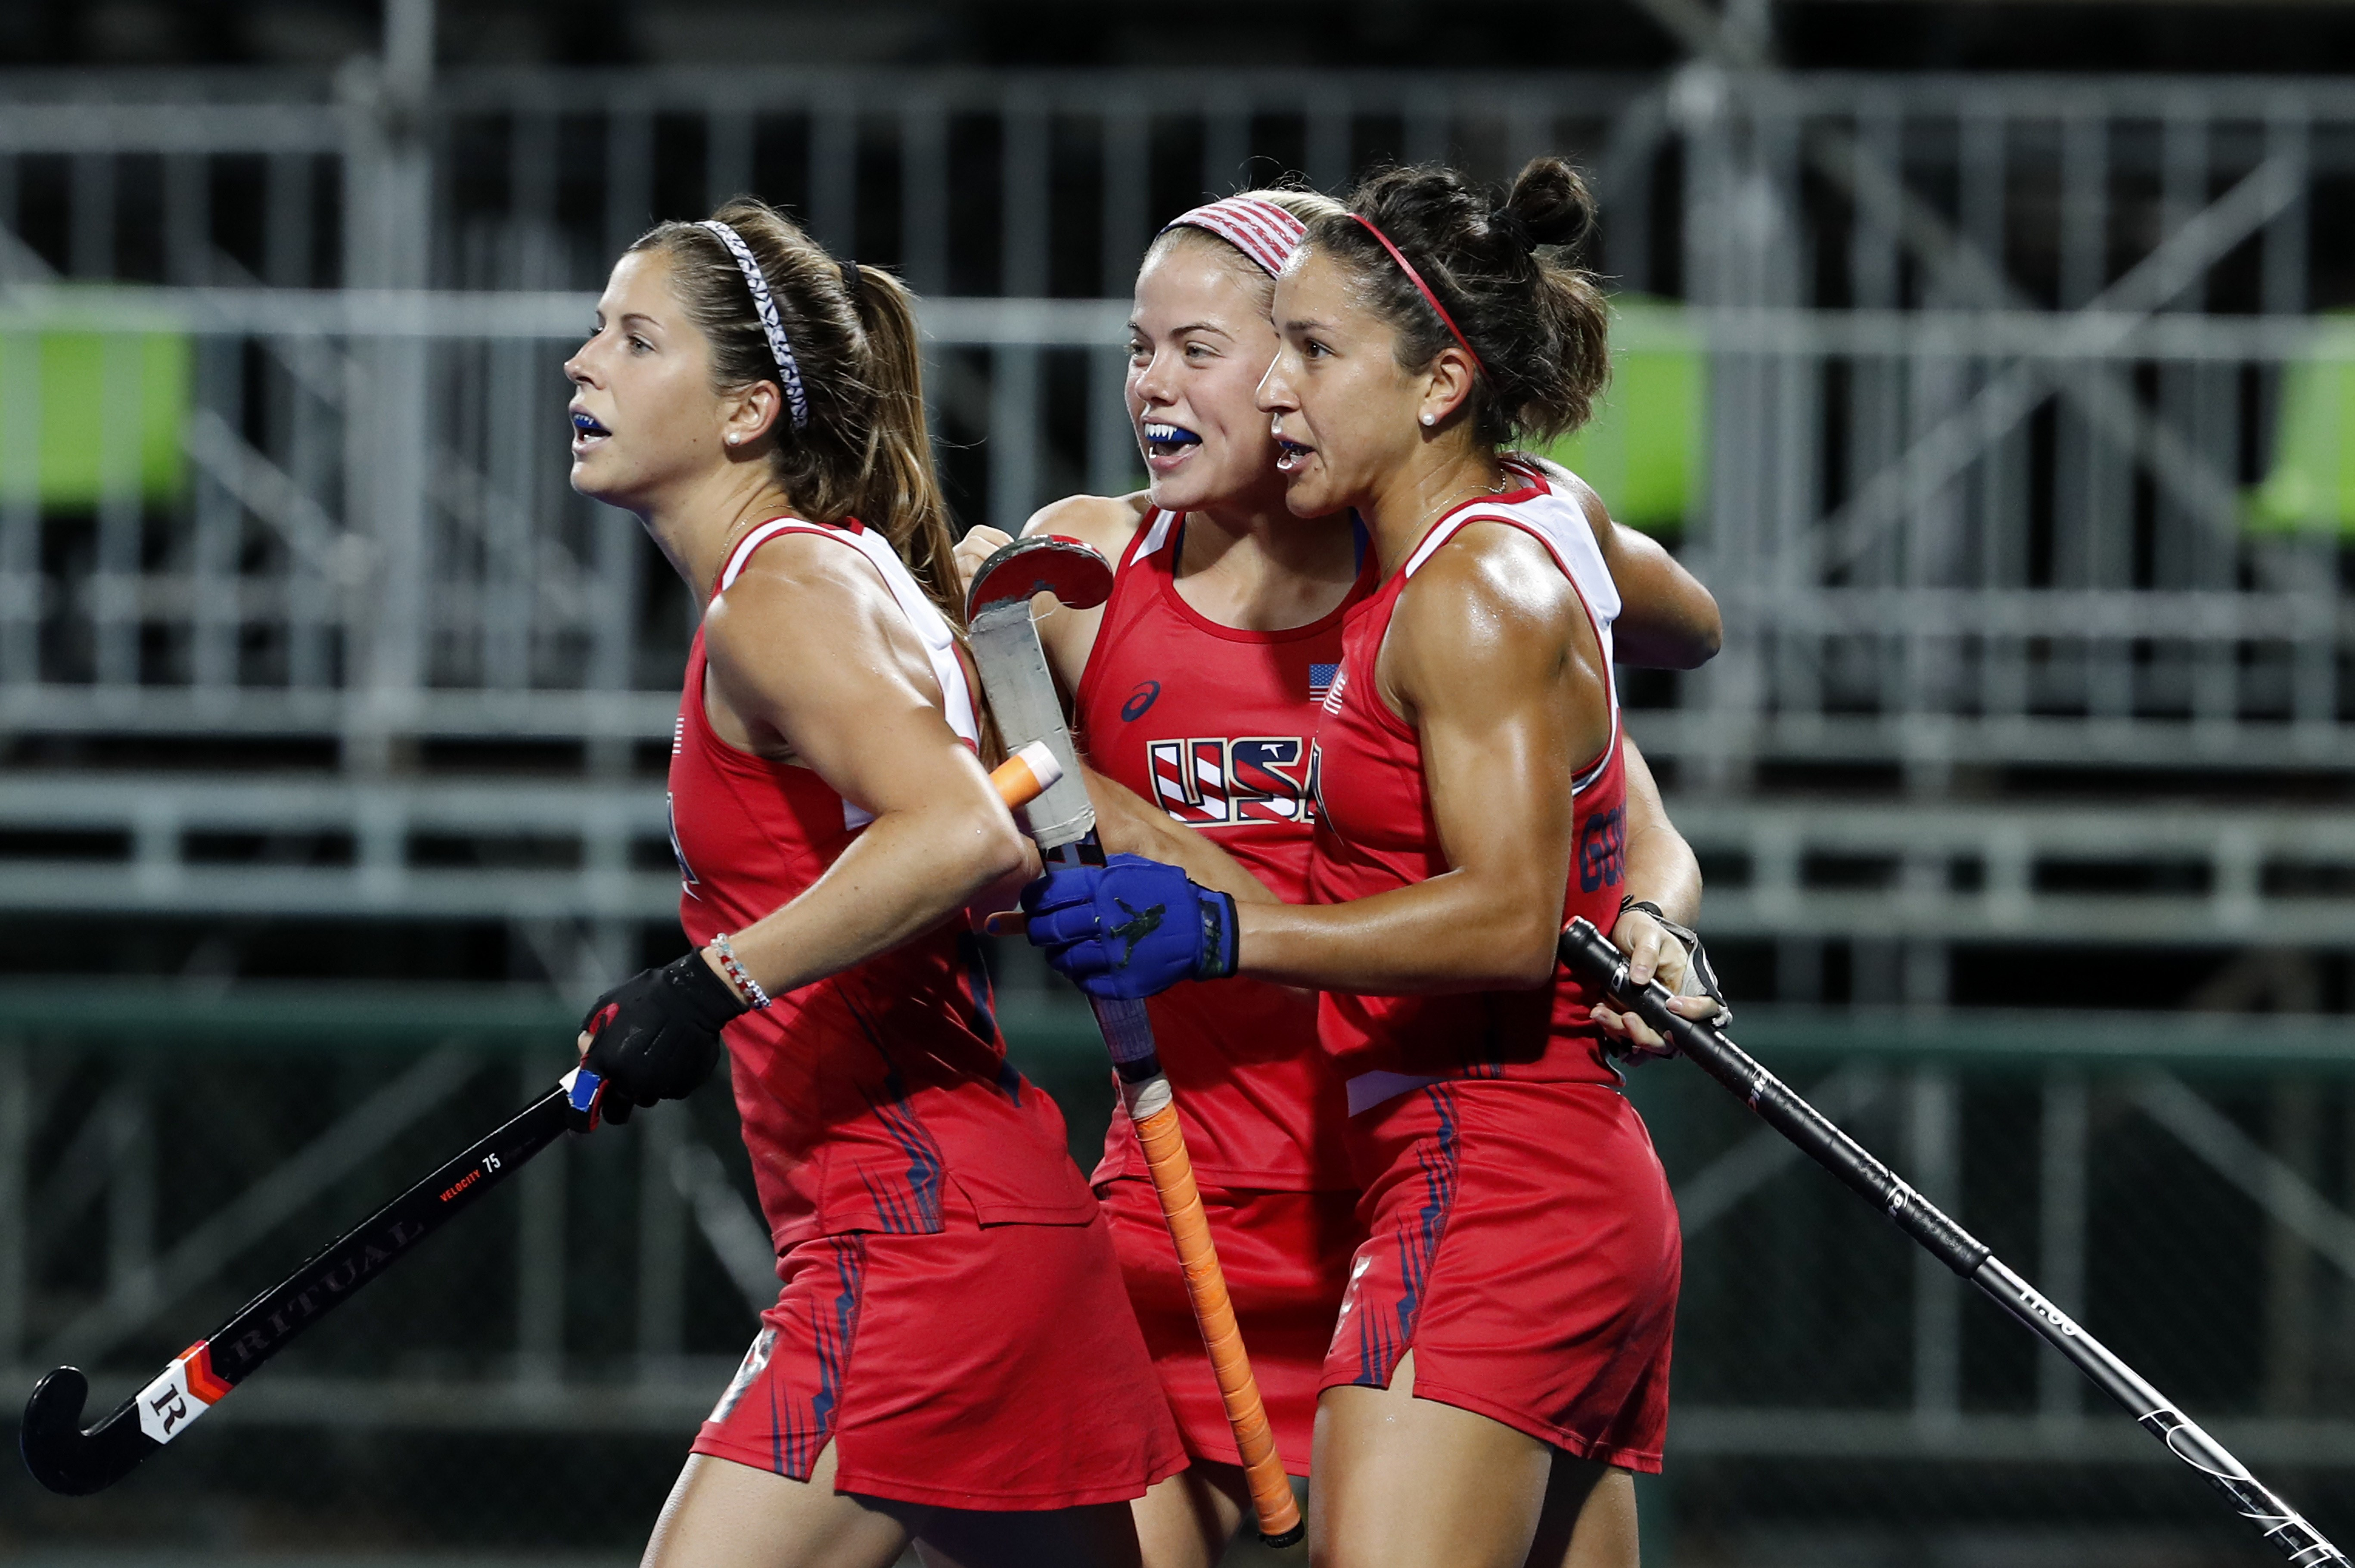 Players of United States celebrate after scoring third goal against India during a women's field hockey match at the 2016 Summer Olympics in Rio de Janeiro, Brazil, Thursday, Aug. 11, 2016. (AP Photo/Dario Lopez-Mills)